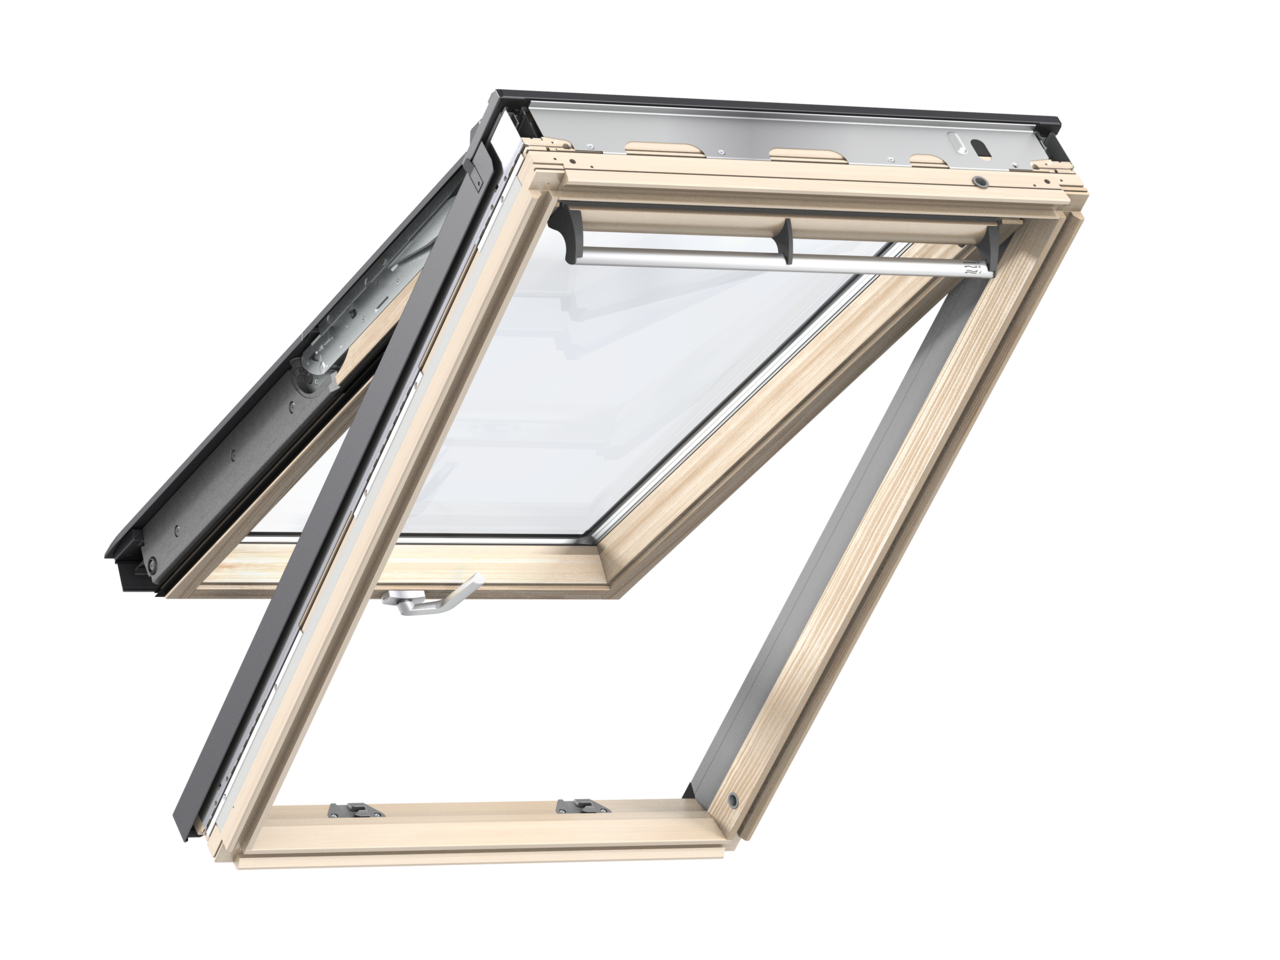 Velux GPL CK04 550 x 980mm Top Hung Standard 70Pane Roof Window - Pine